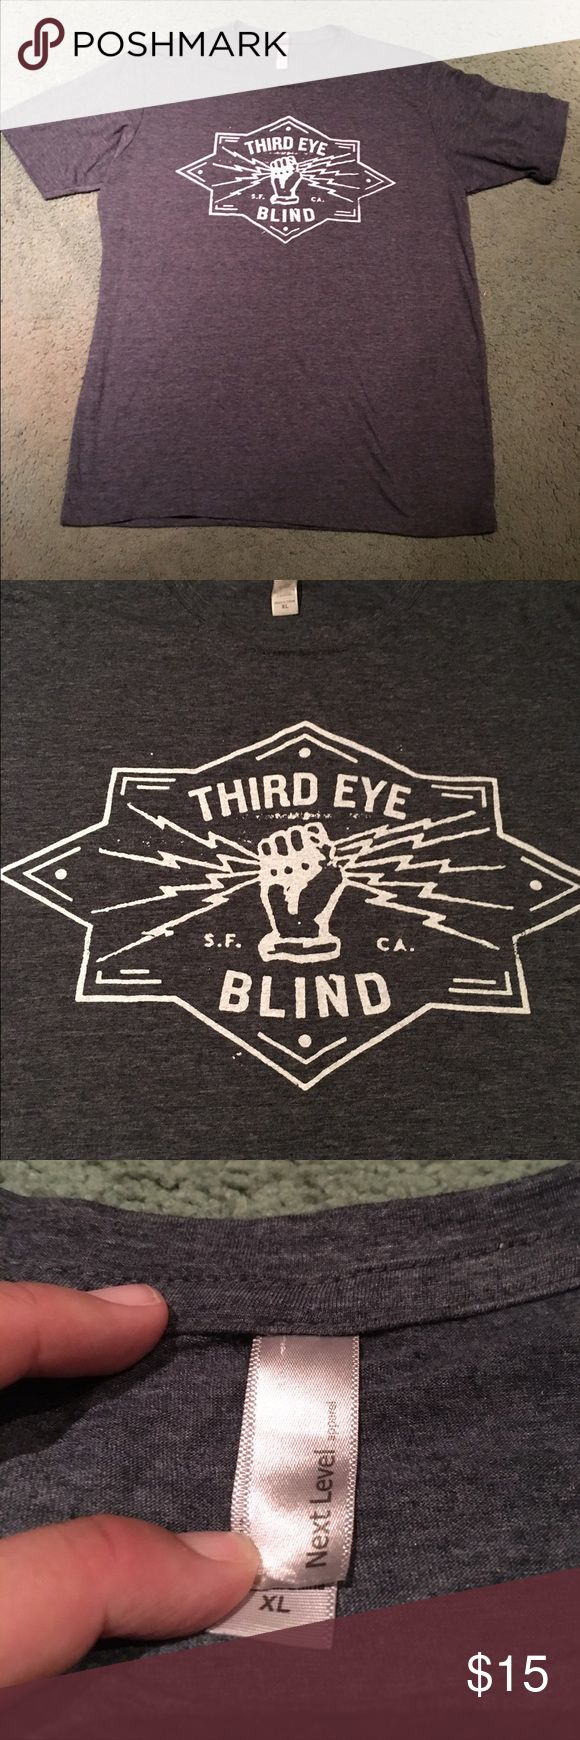 Third Eye Blind T-Shirt Size XL I am selling a never been worn Third Eye Blind t-shirt in a size XL. Please lmk if you have any questions! Third Eye Blind Tops Tees - Short Sleeve